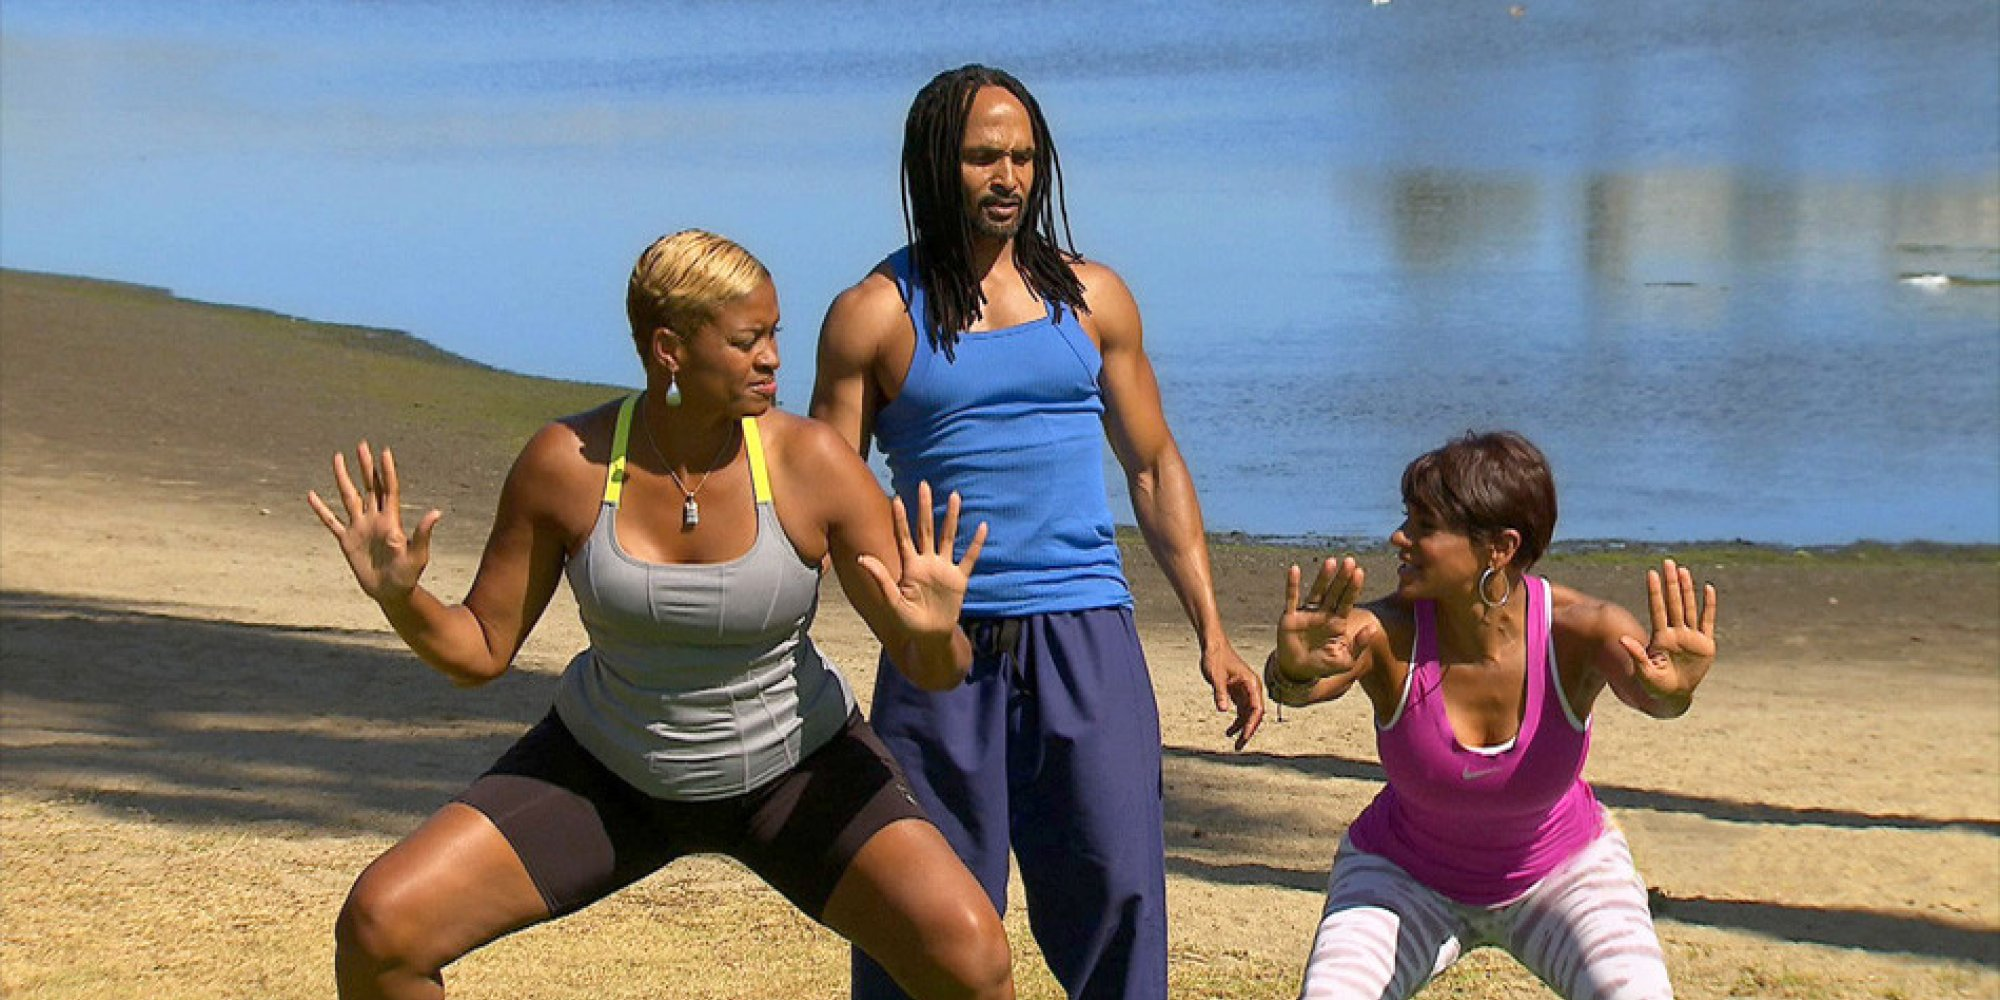 Pam McGee Works Out With A Fitness Expert She Dubs 'Black Jesus